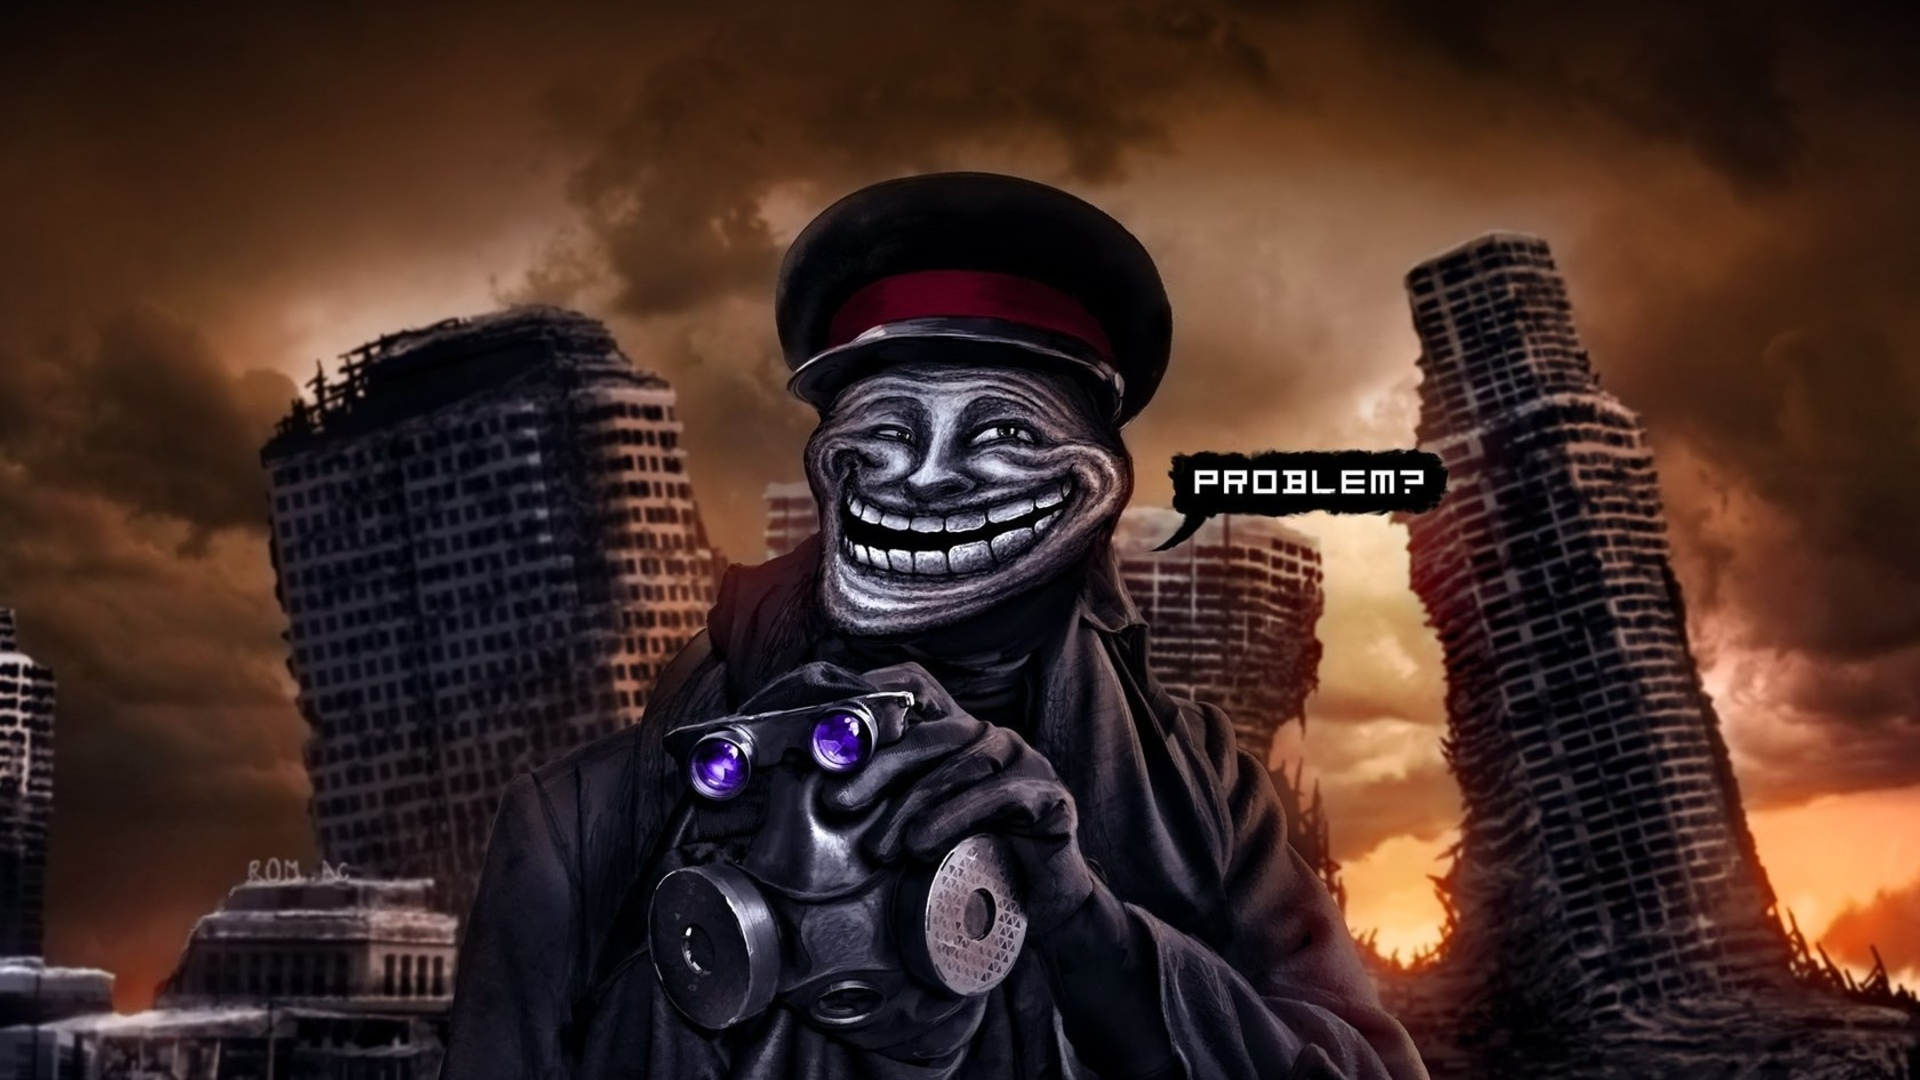 романтика апокалипсиса, romantically apocalyptic, troll face, капитан